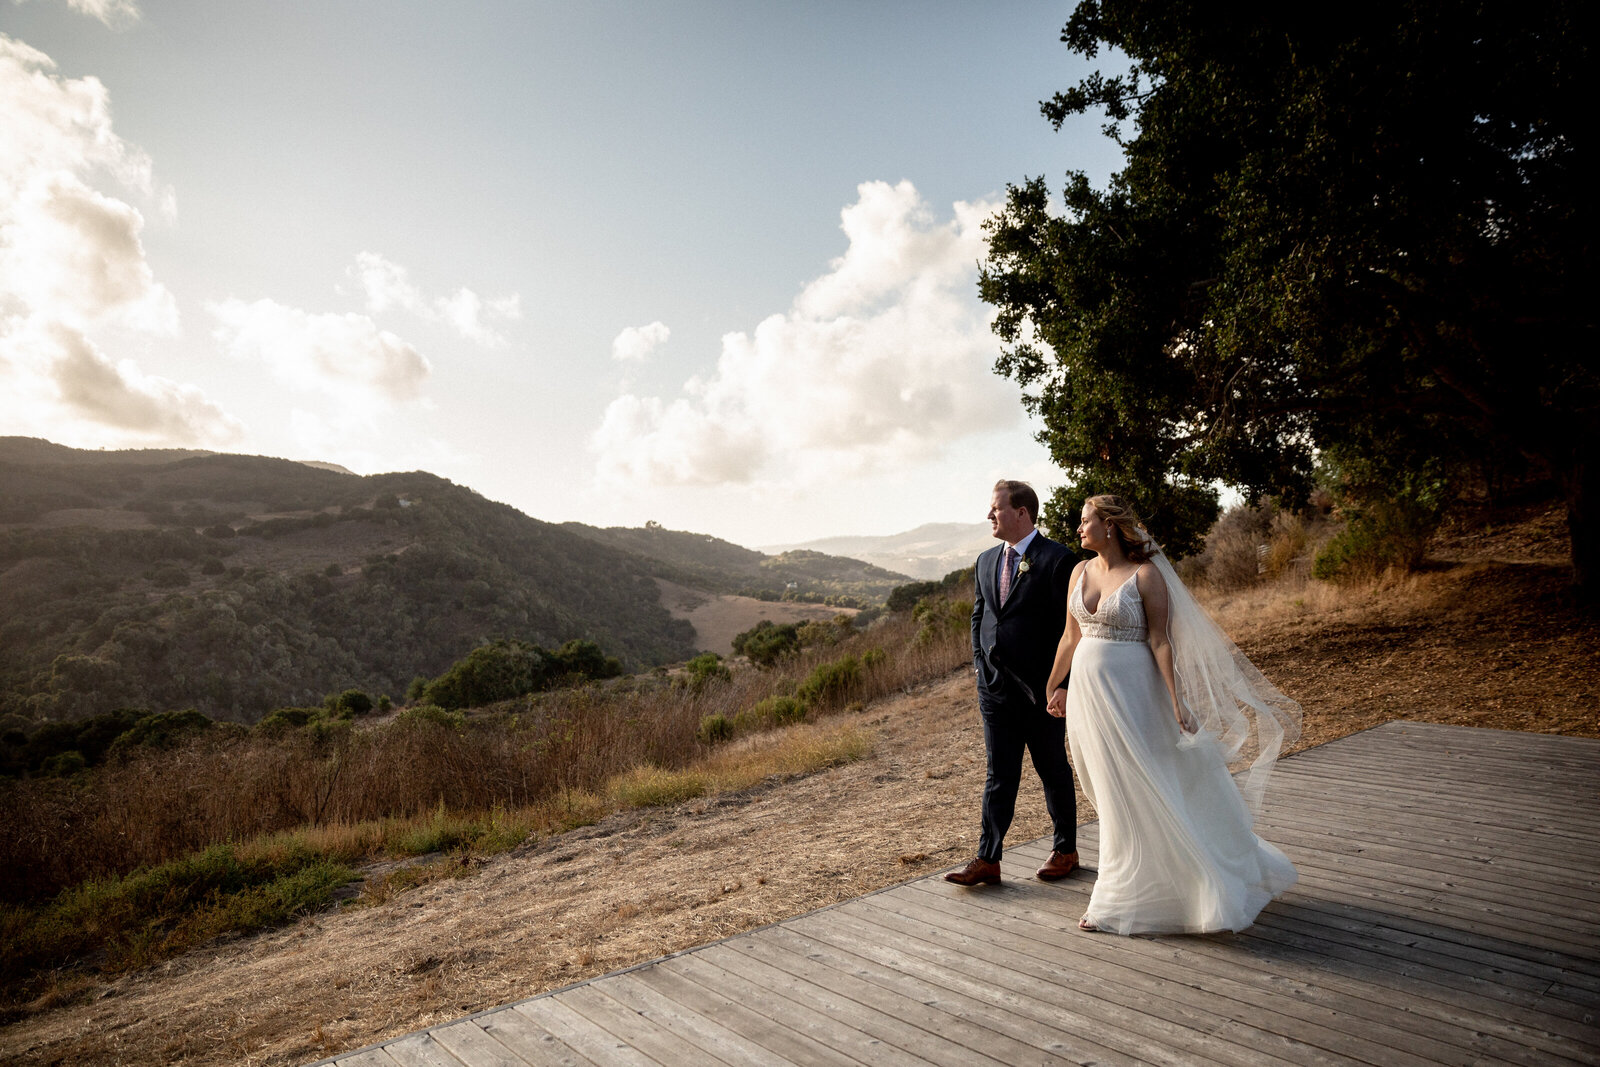 larissa-cleveland-elope-eleopement-intimate-wedding-photographer-san-francisco-napa-carmel-096